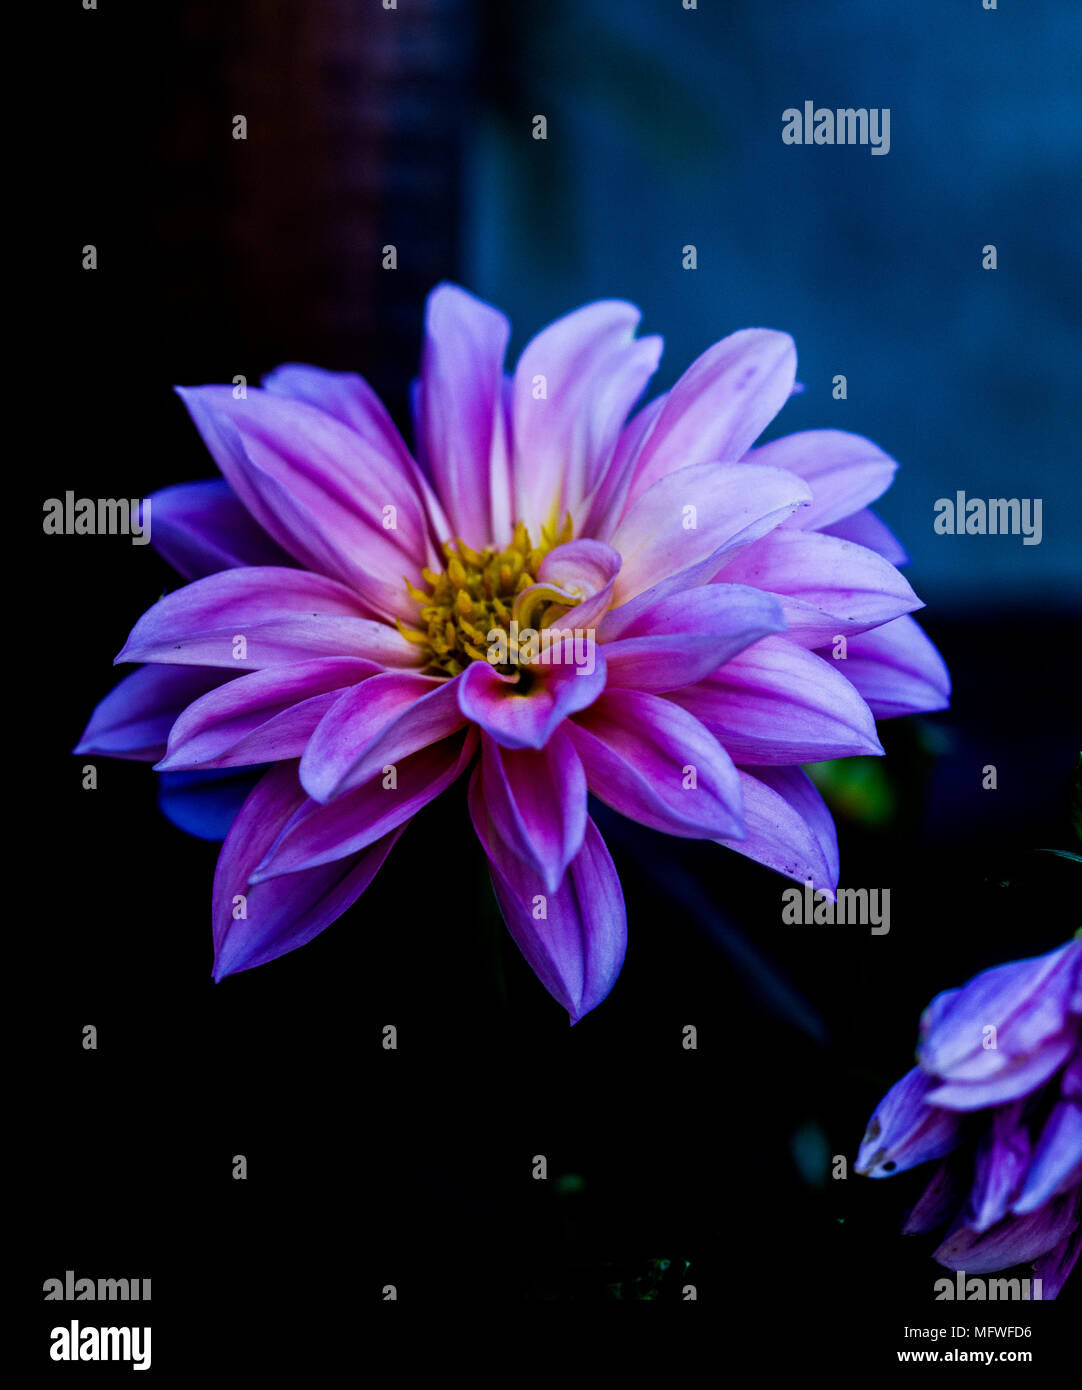 Beautiful flowers, calming, vibrant colours - Stock Image